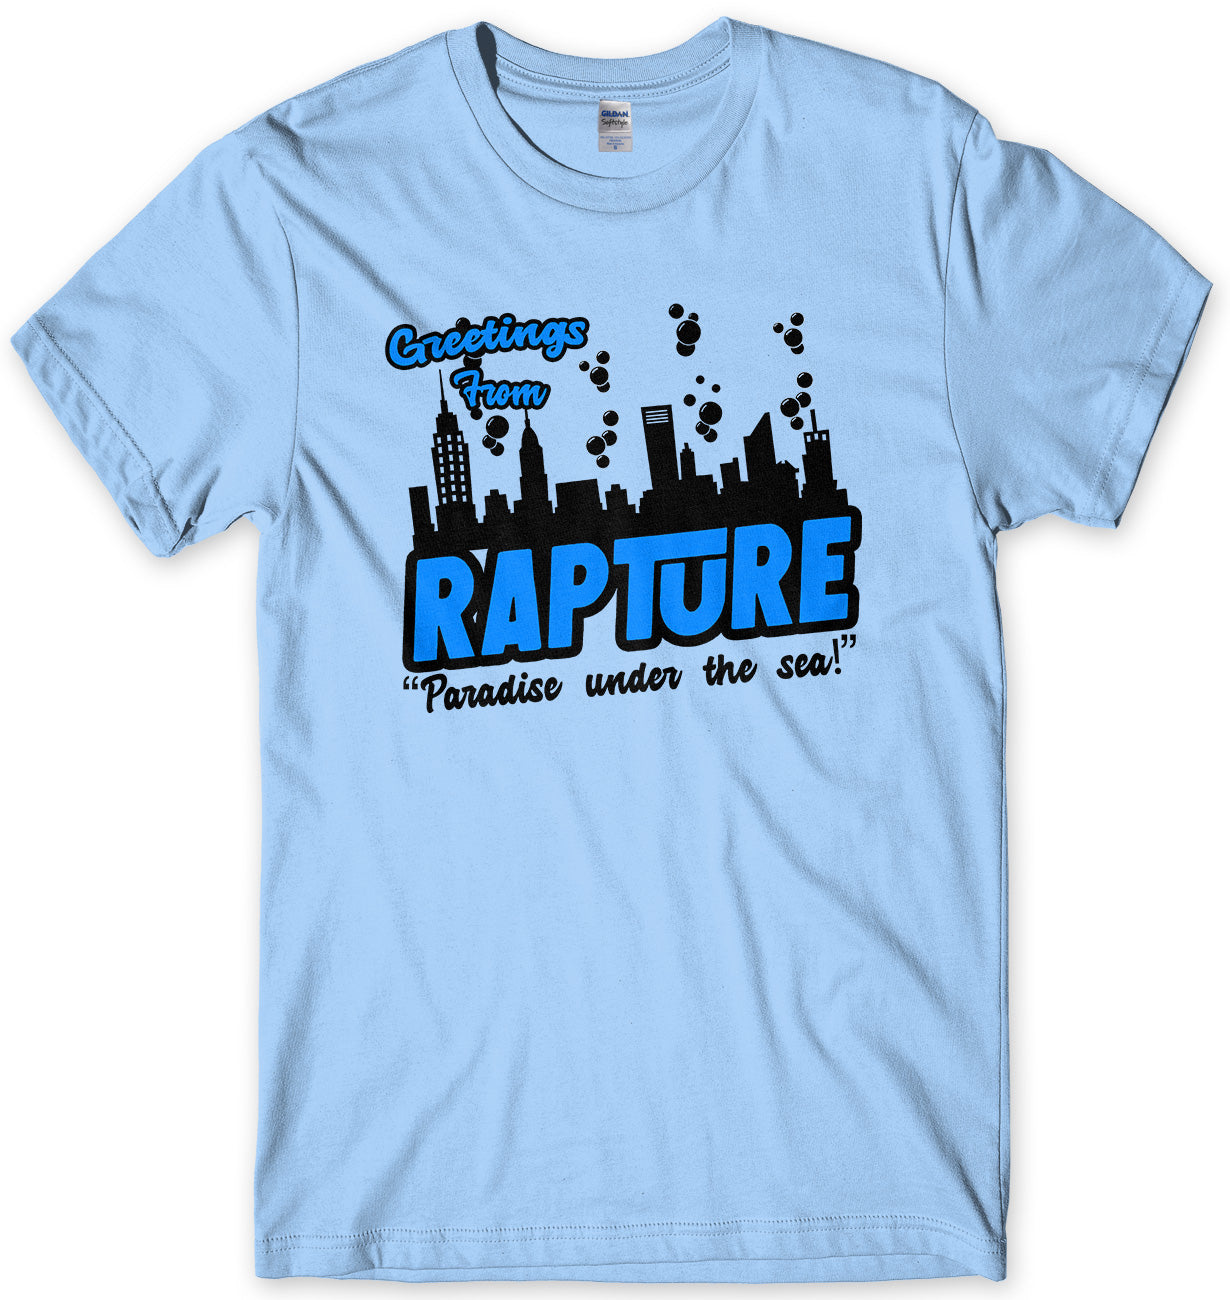 GREETINGS FROM RAPTURE MENS UNISEX T-SHIRT